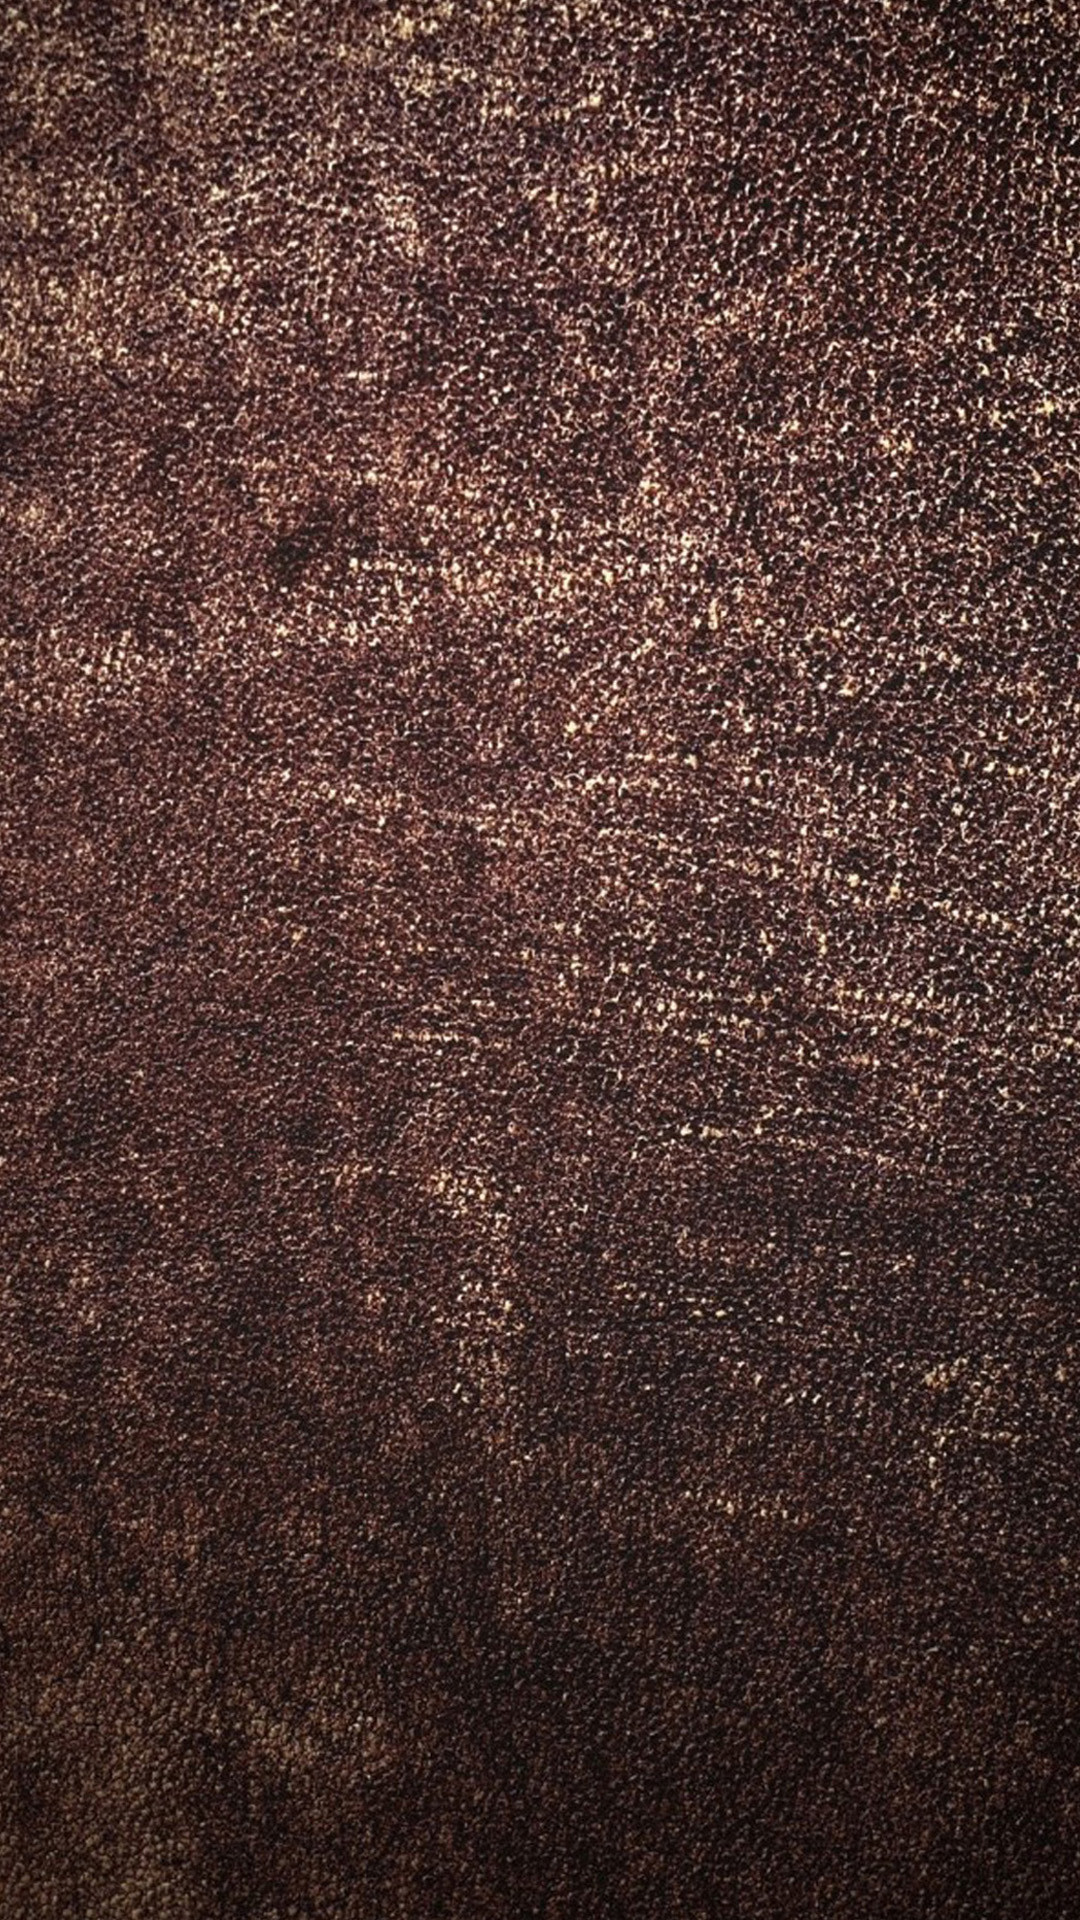 Brown Leather Sony Xperia Z2 Wallpapers